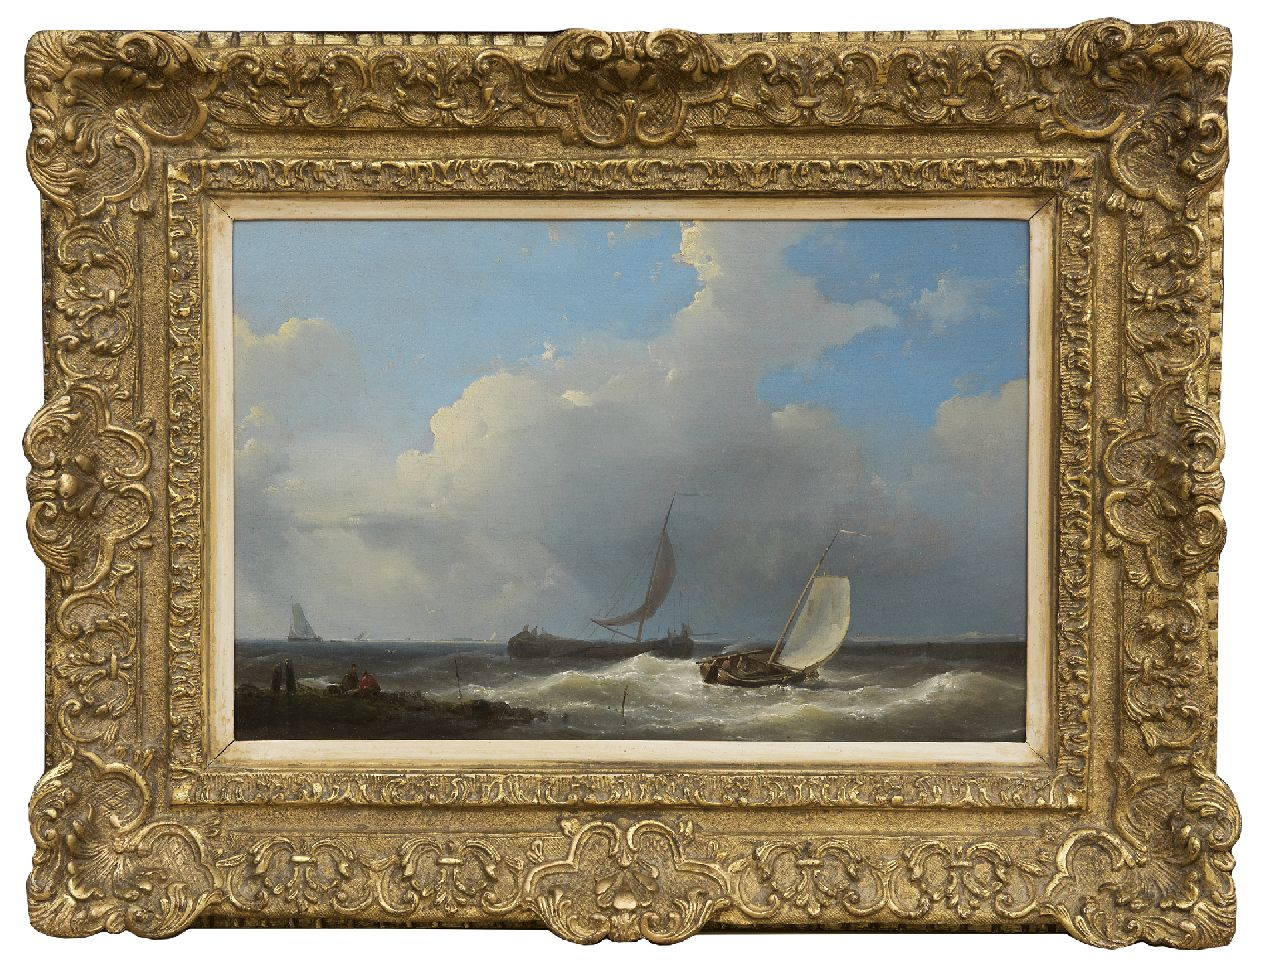 Hulk A.  | Abraham Hulk | Paintings offered for sale | Sailing boats near the coast, oil on panel 21.5 x 32.3 cm, signed l.l. and dated 1849